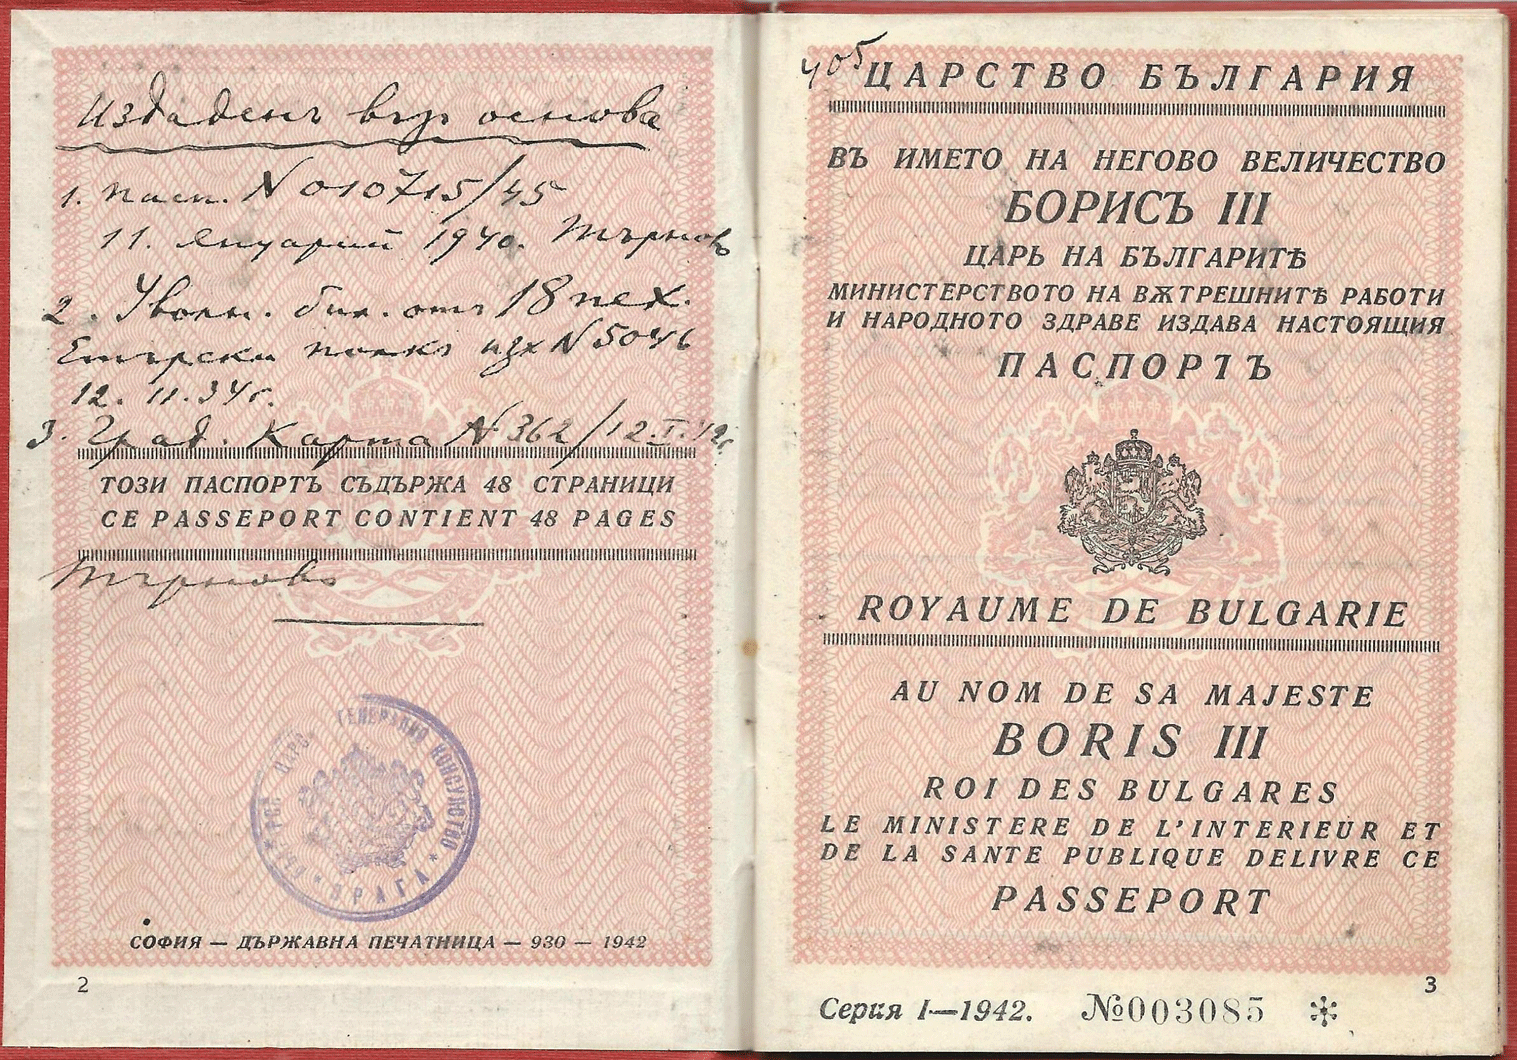 Axis consular passport 1942